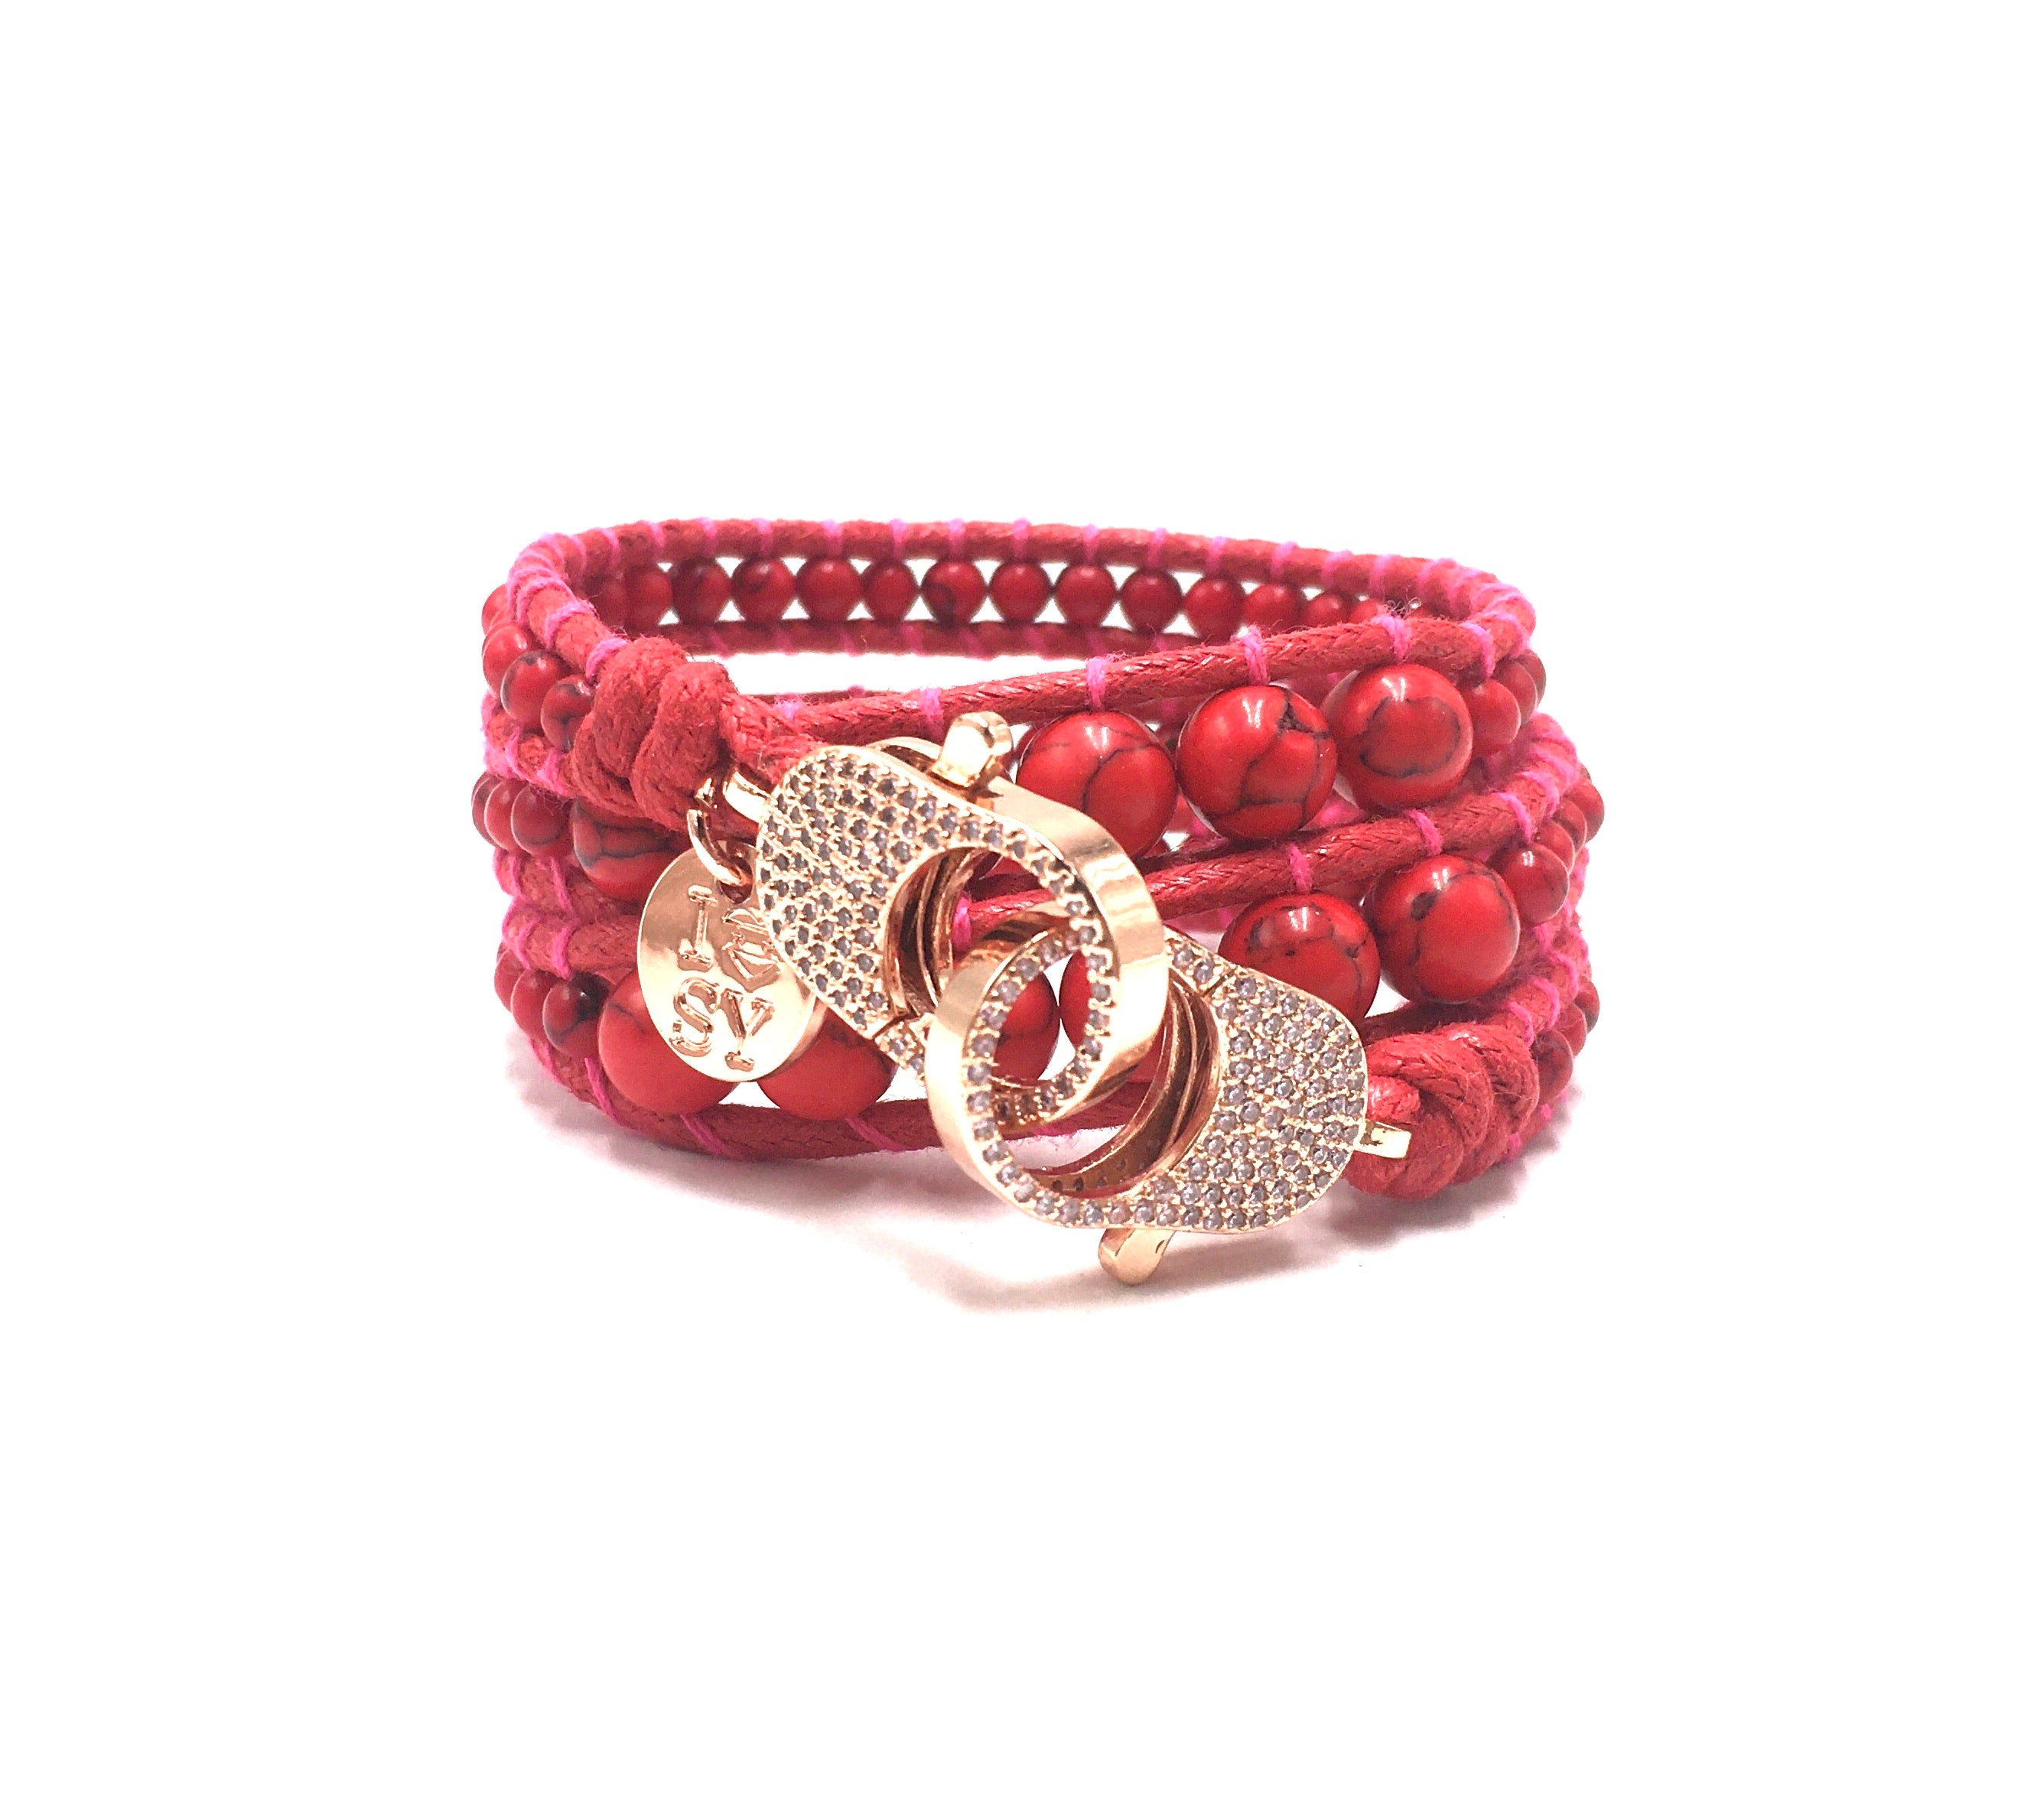 Red stone wrap bracelet, rose gold clips